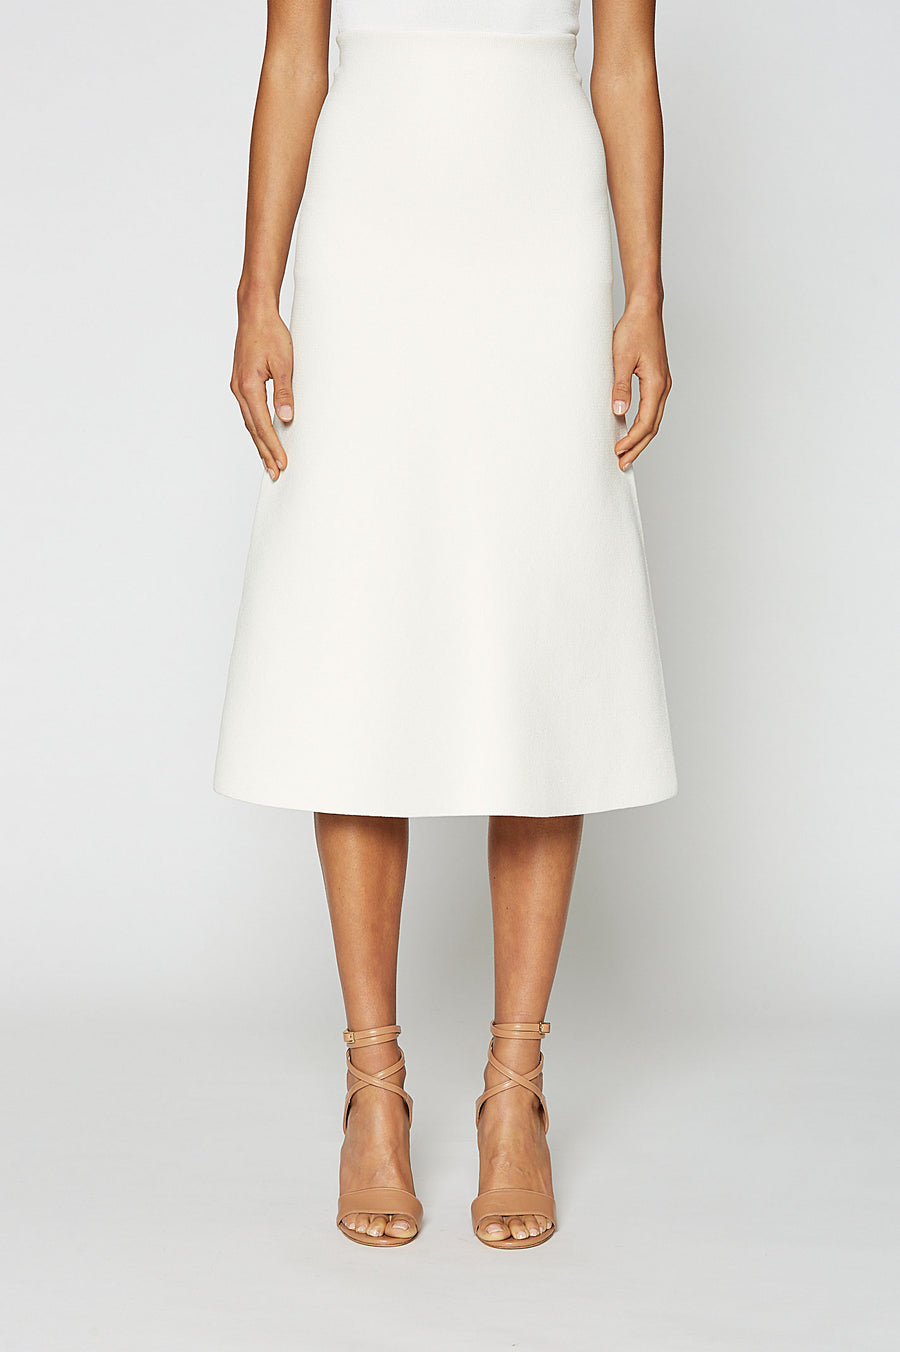 CREPE KNIT A-LINE SKIRT, CREAM Crepe Knit A-Line Skirt, fitted at the waist, A-line body, sits below knee, Color Cream